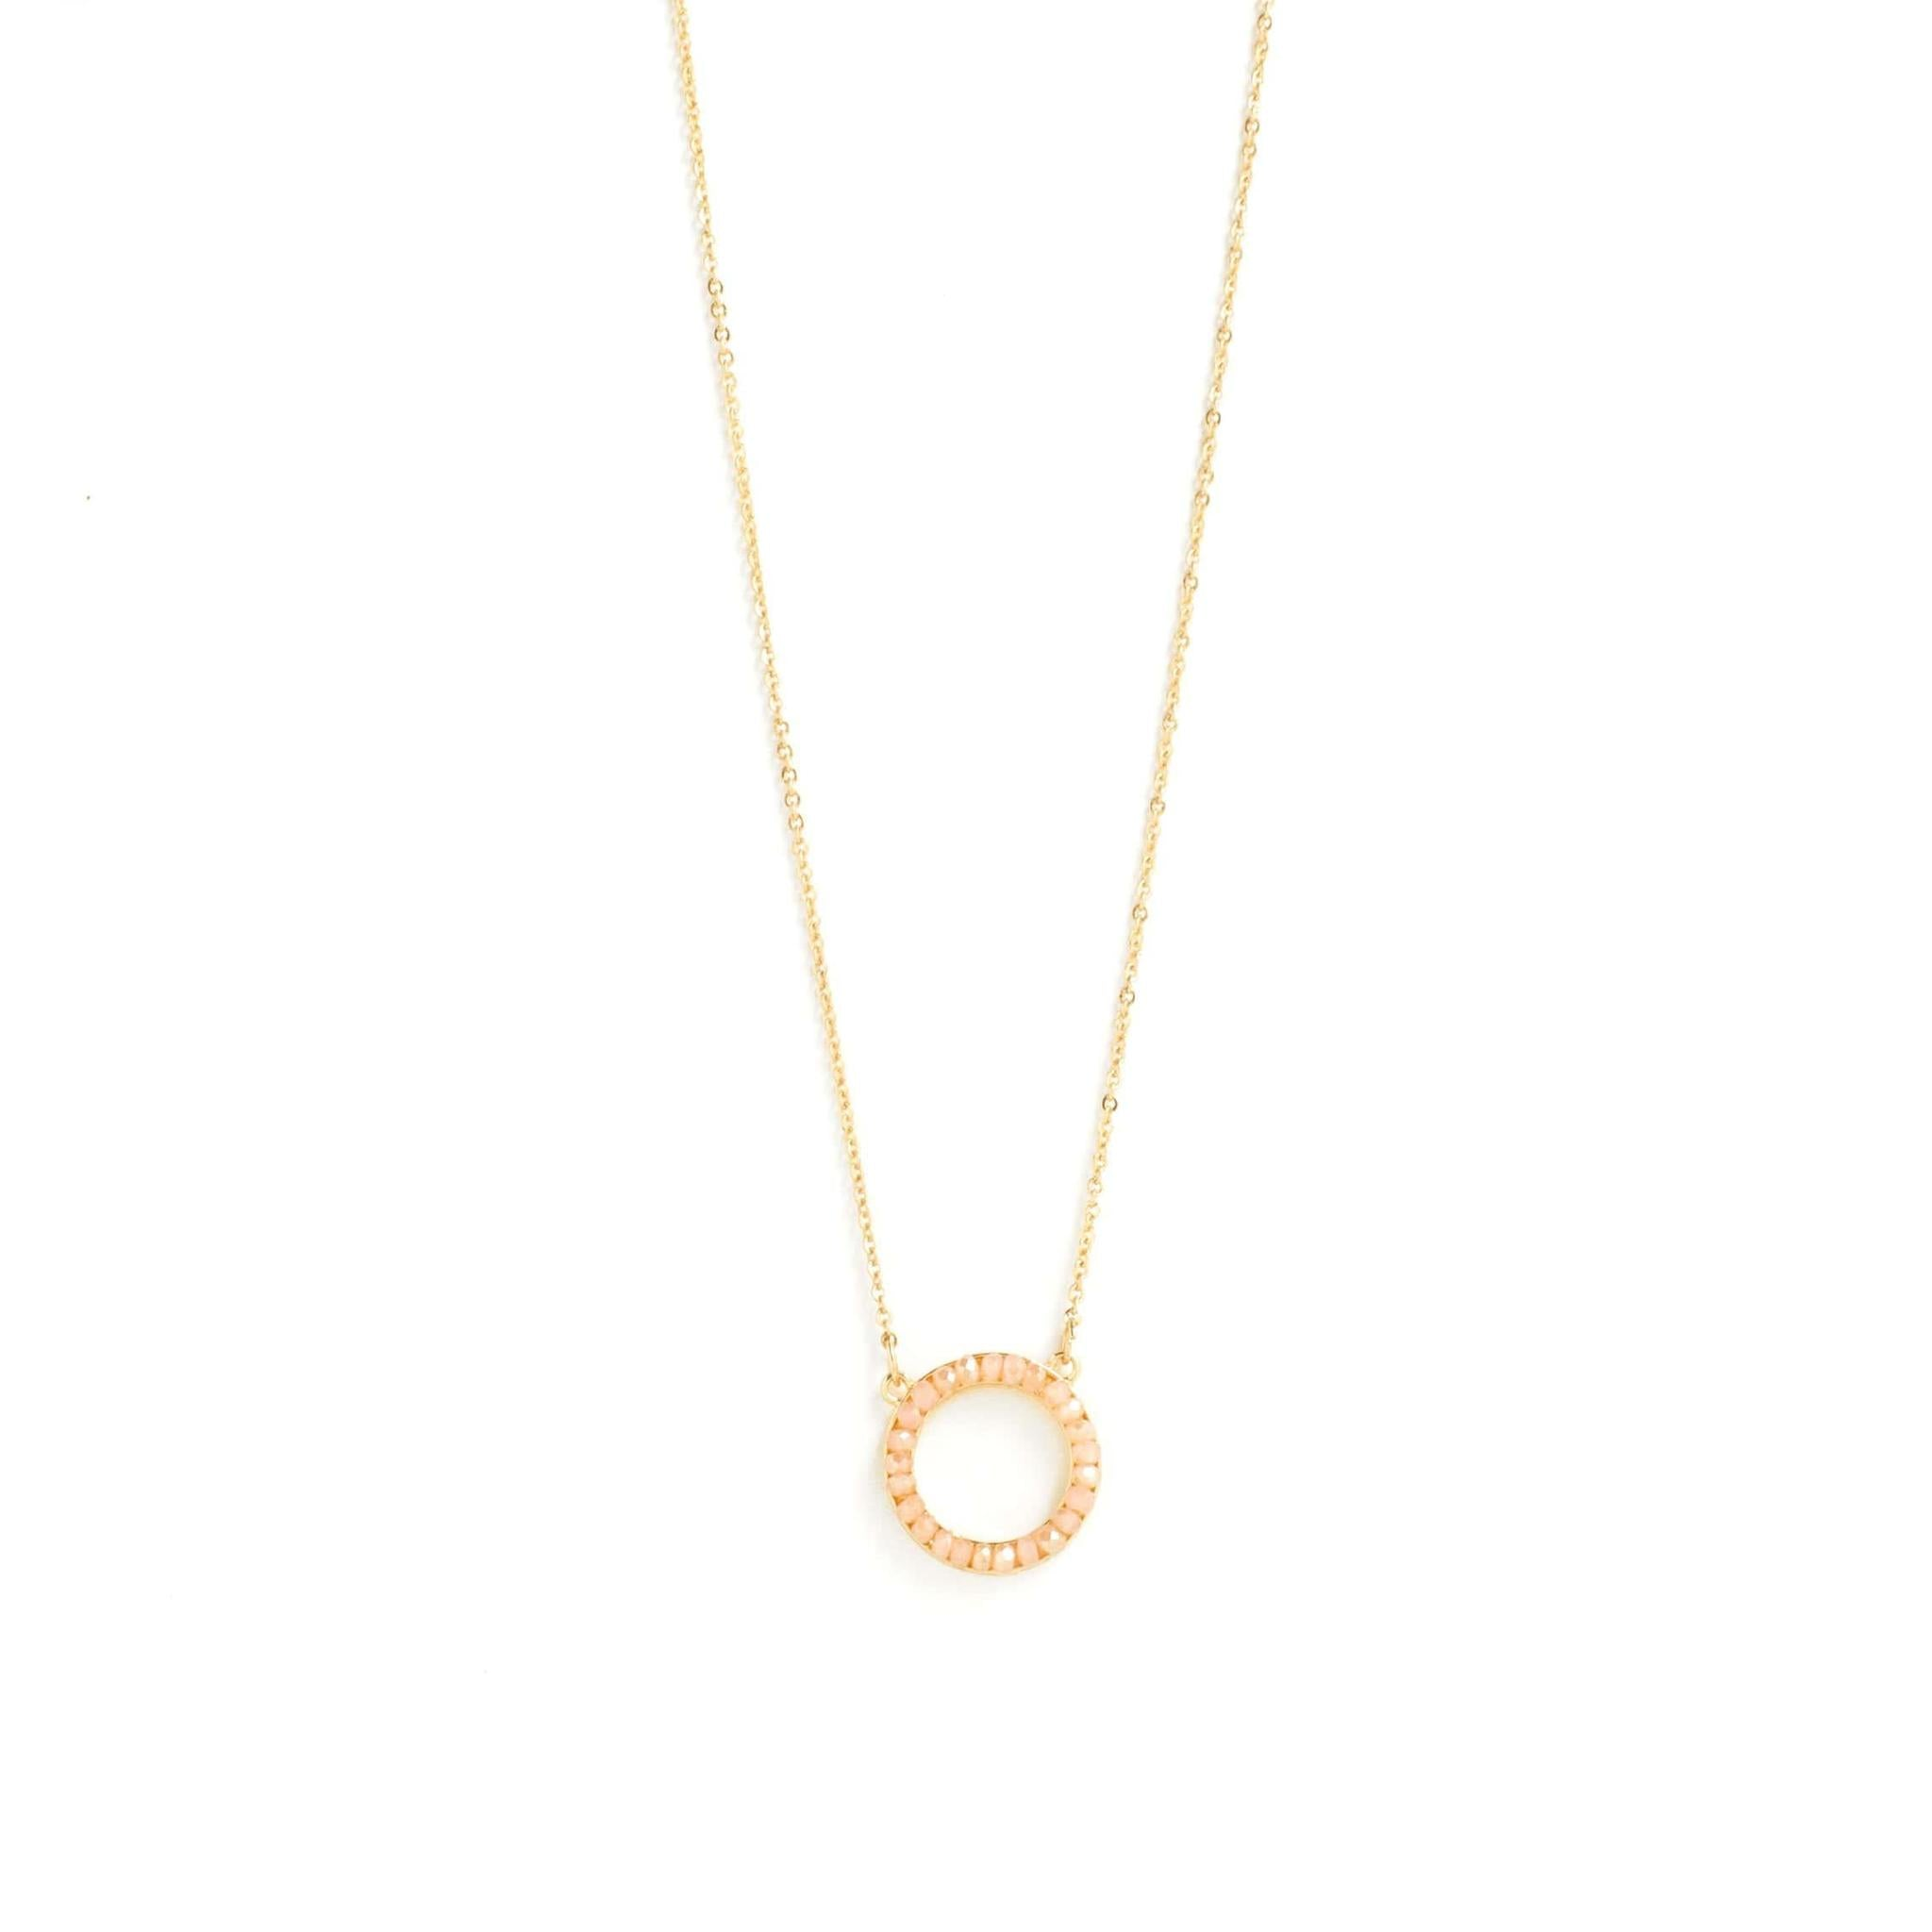 DUSTY ROSE CIRCLE NECKLACE N7071-GDR